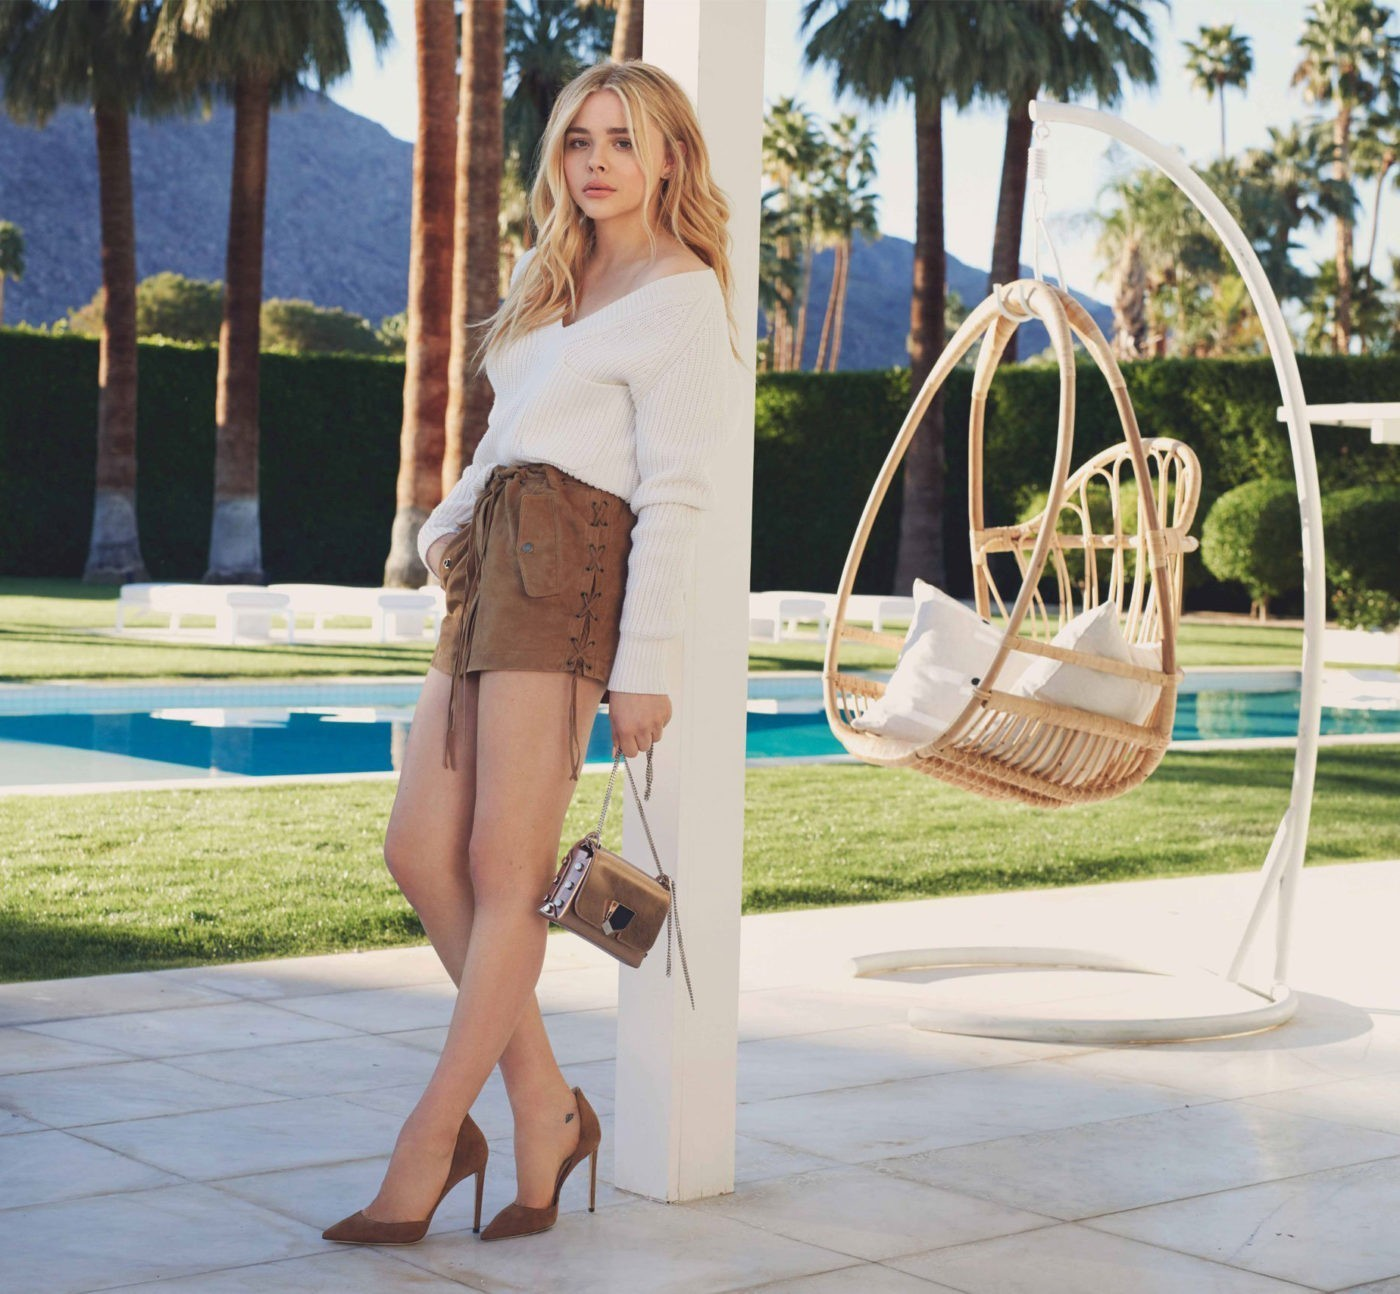 Shop The Jimmy Choo Spring 2018 Collection Featuring Chloë